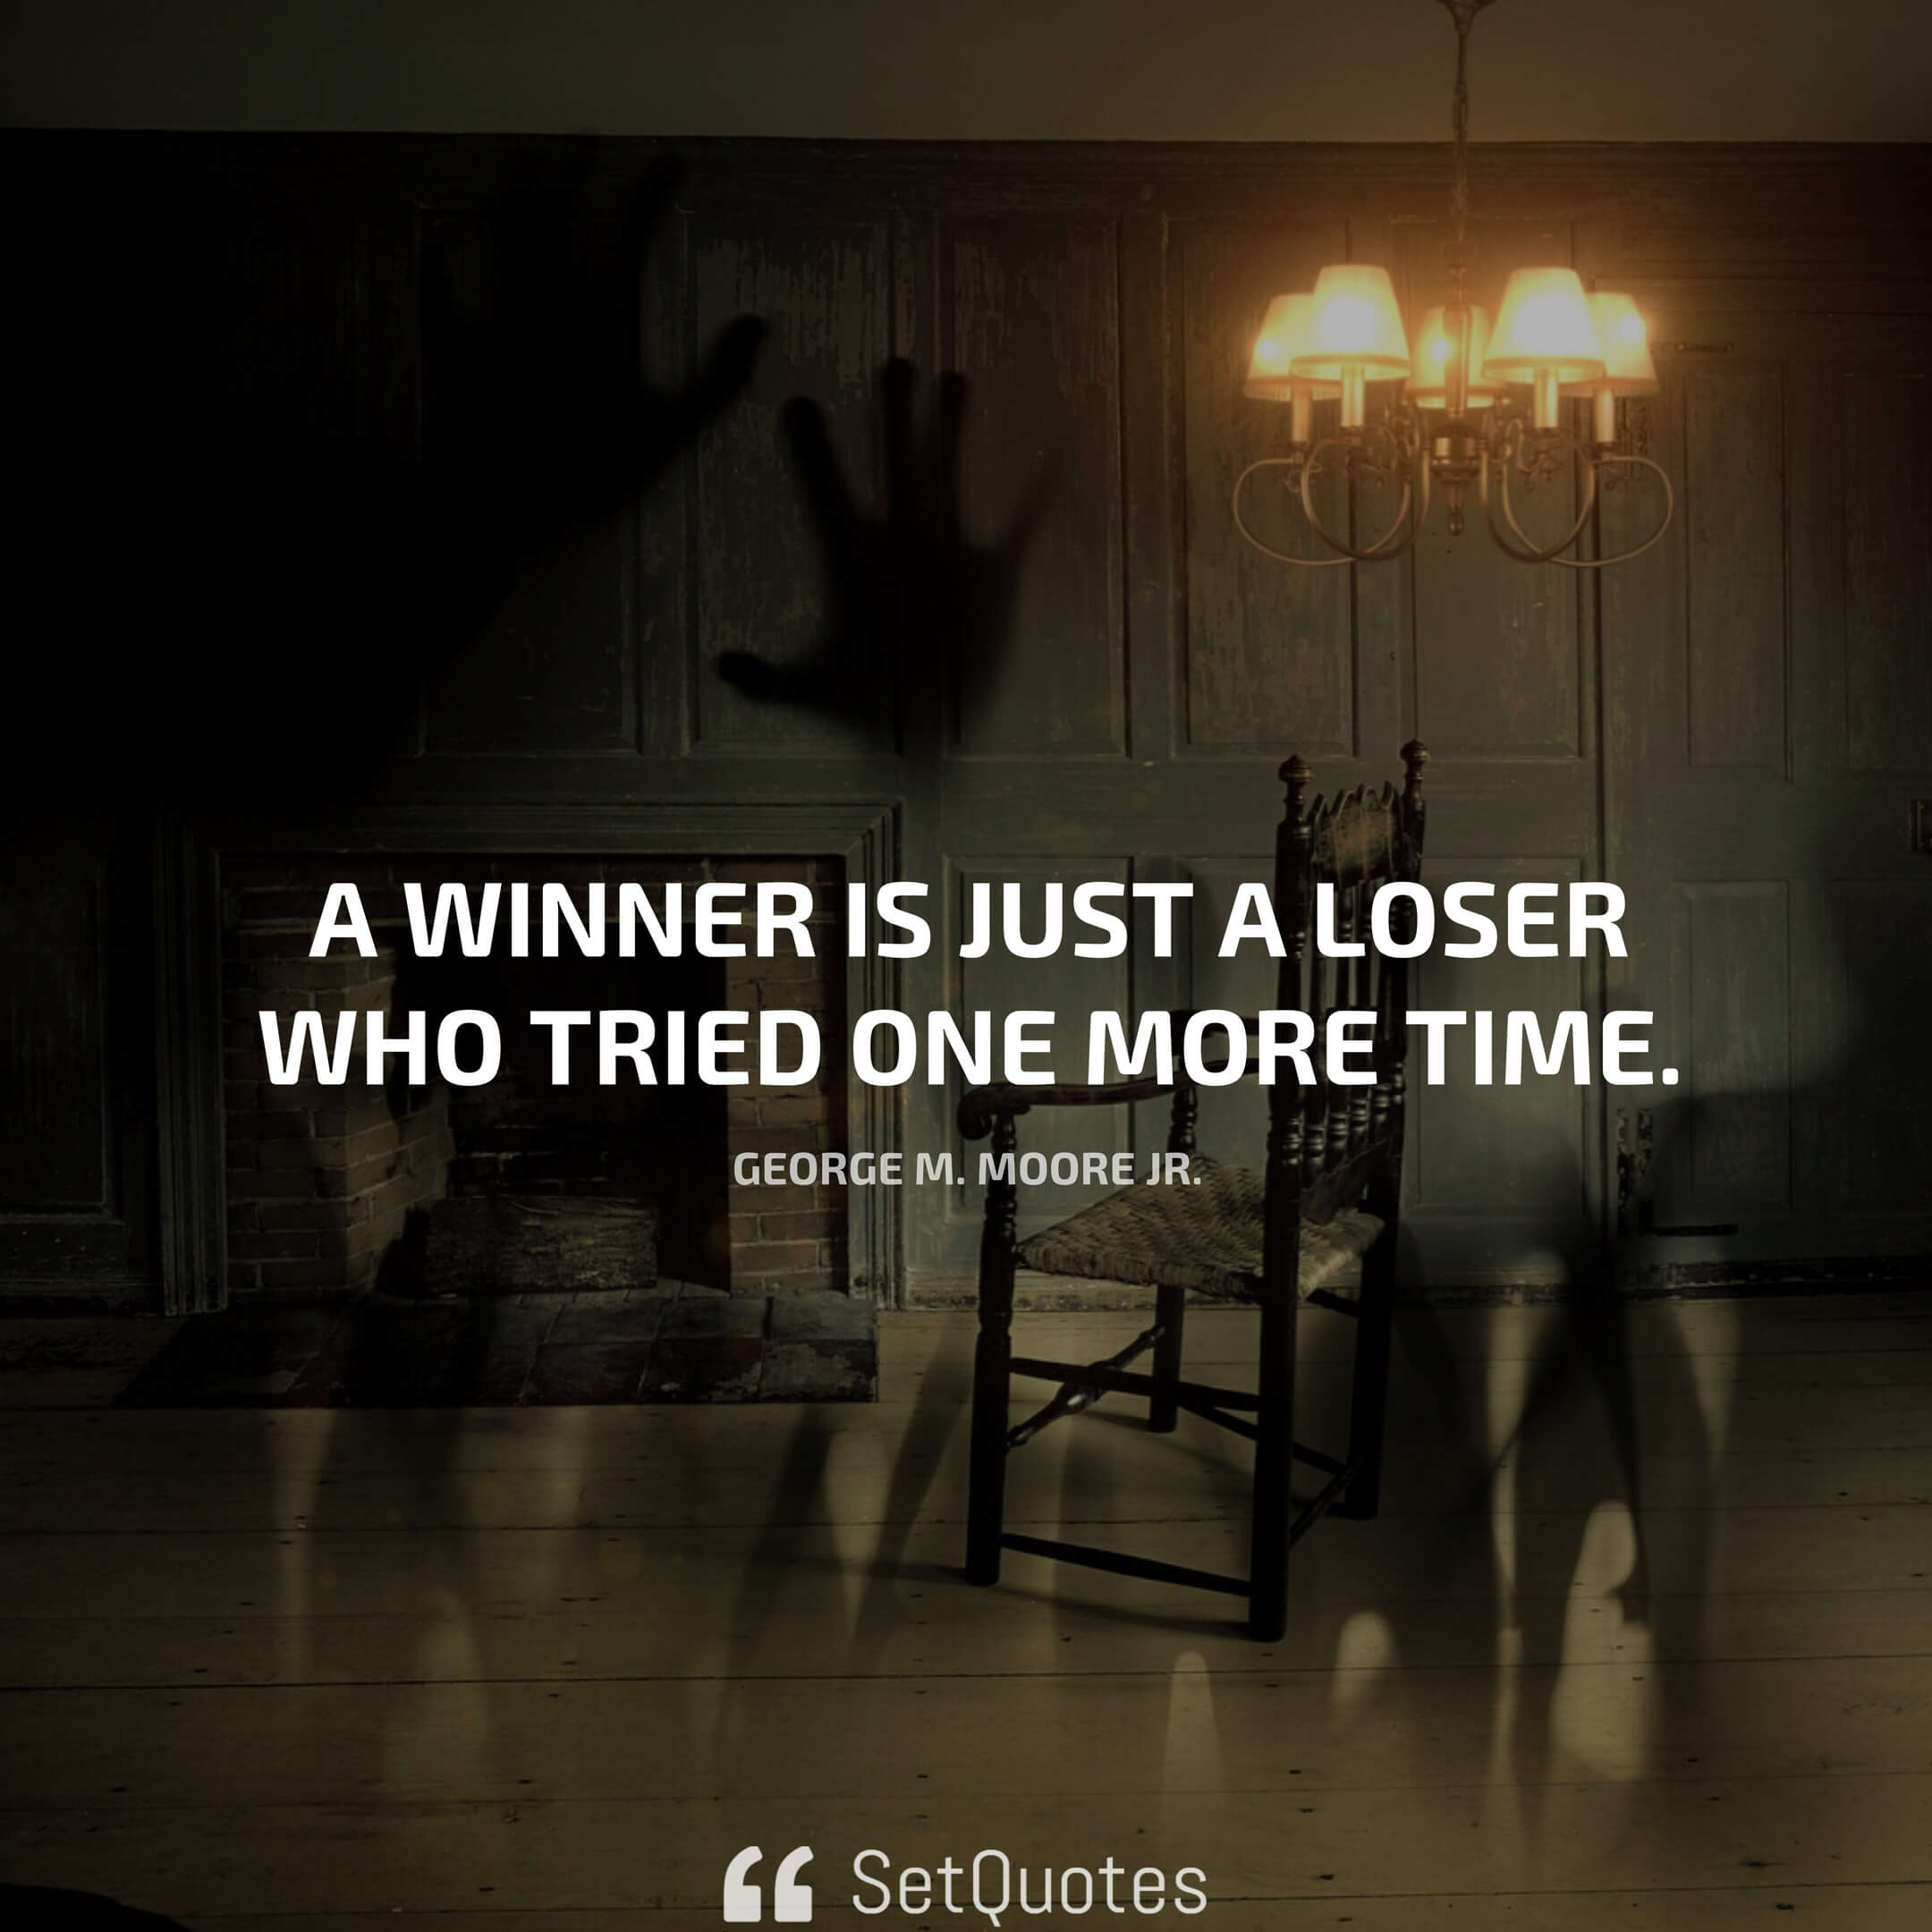 A winner is just a loser who tried one more time. – George M. Moore Jr.